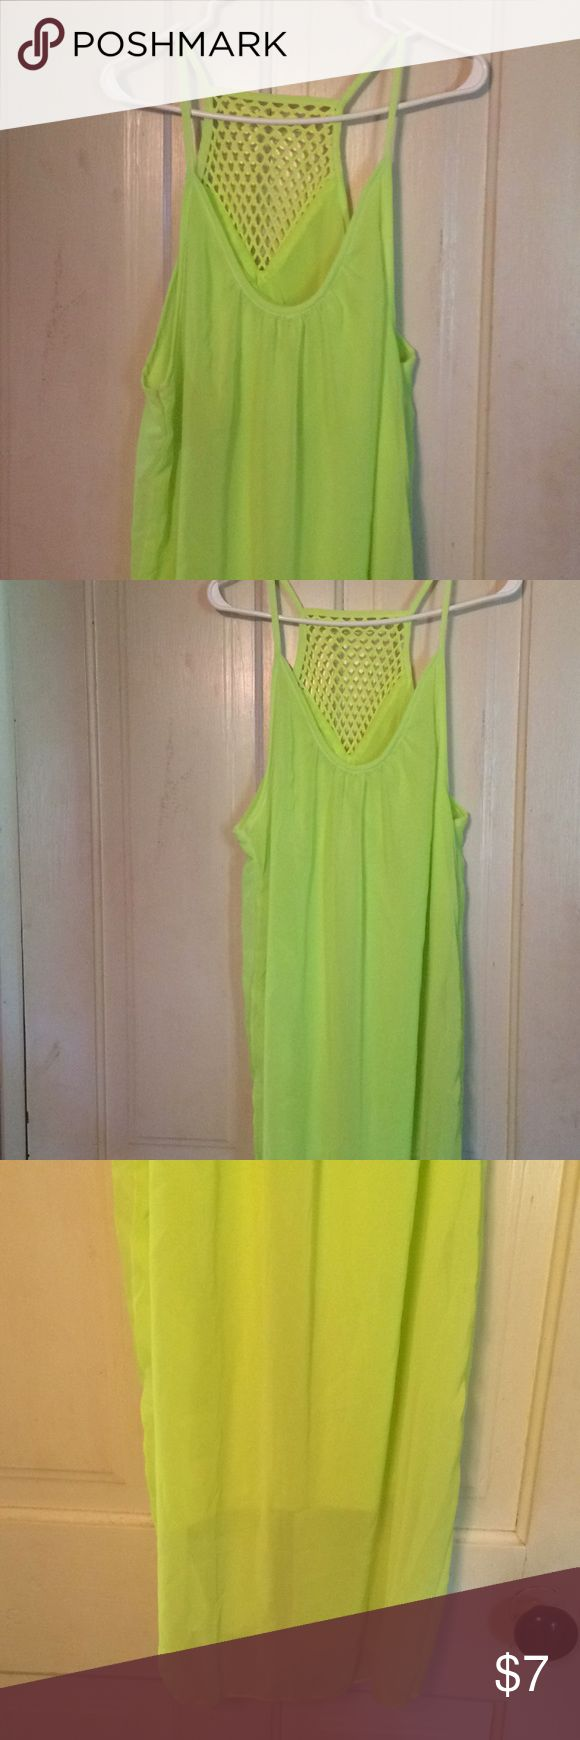 Large neon green dress New but no tags, lined but thin dress, could be used as a swimsuit coverup Dresses Mini